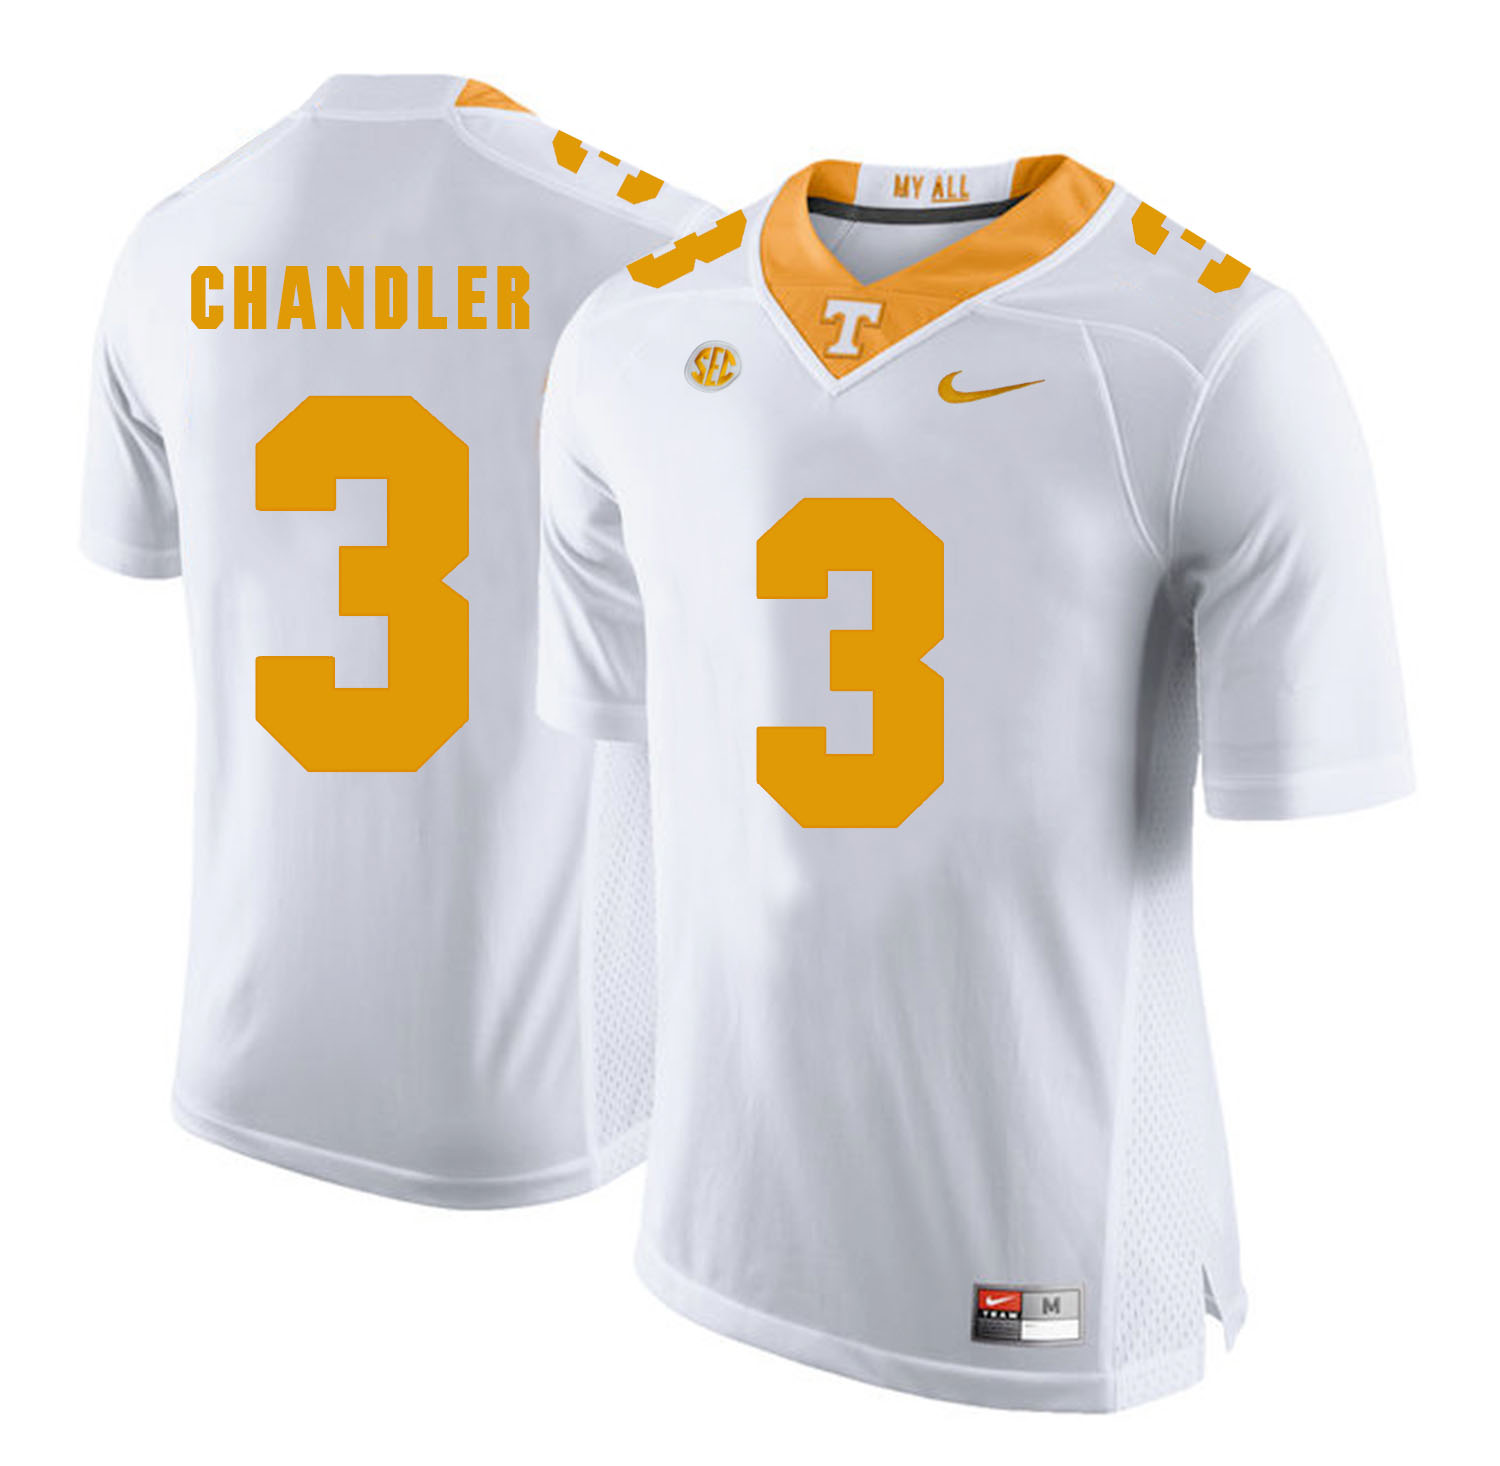 Tennessee Volunteers 3 White Ty Chandler White College Football Jersey